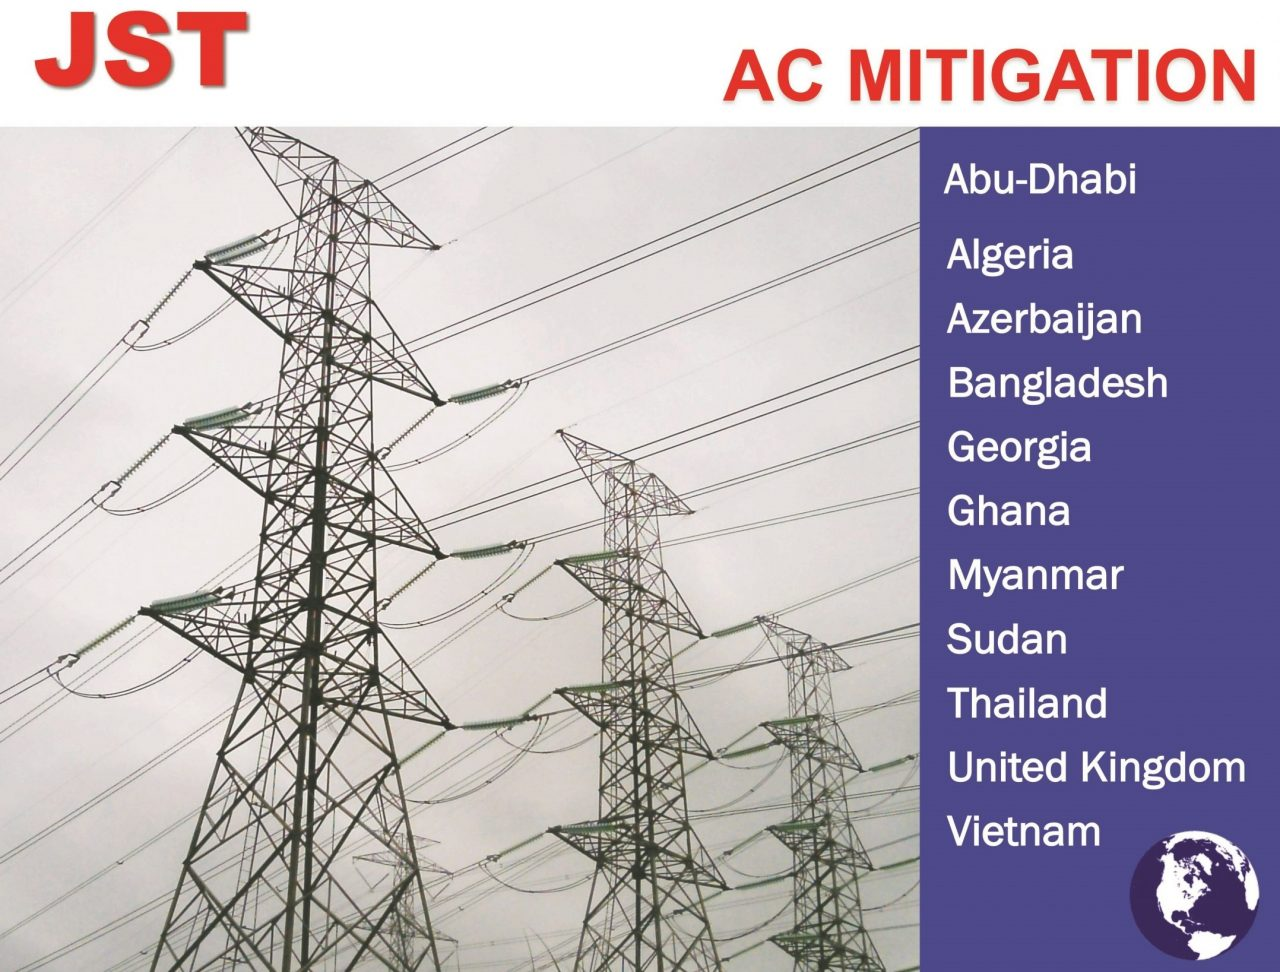 AC Mitigation Thailand,Cathodic Thailand,A.C. Mitigation,AC Interference,DC interference,Cathodic,Stray current,Cathodic Protection,Anode